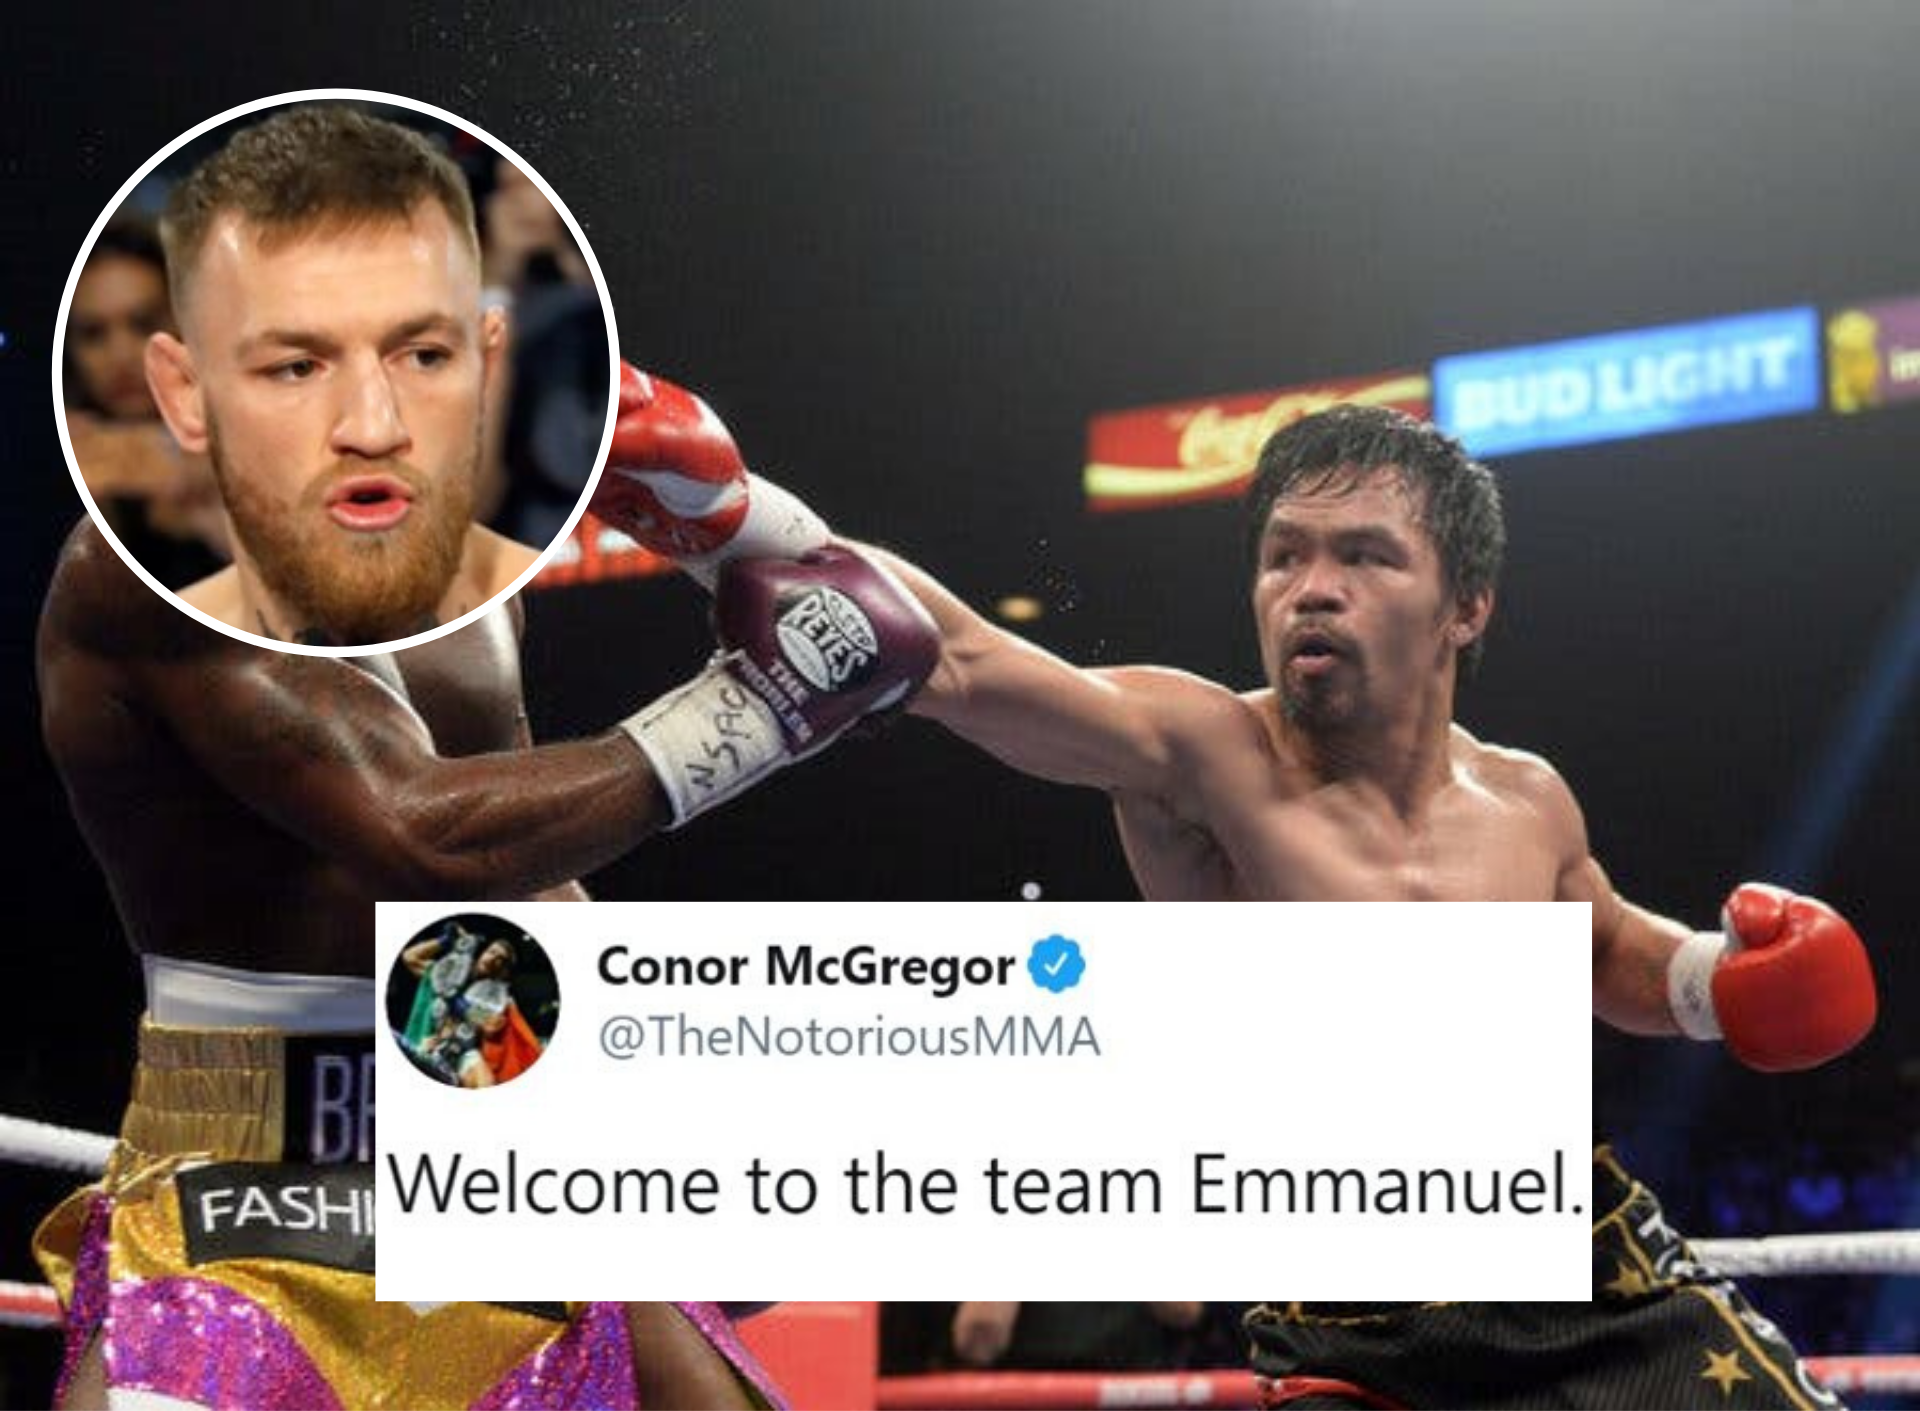 UFC News: Manny Pacquiao signs with Paradigm - the same company that manages Conor McGregor! - Pacquiao